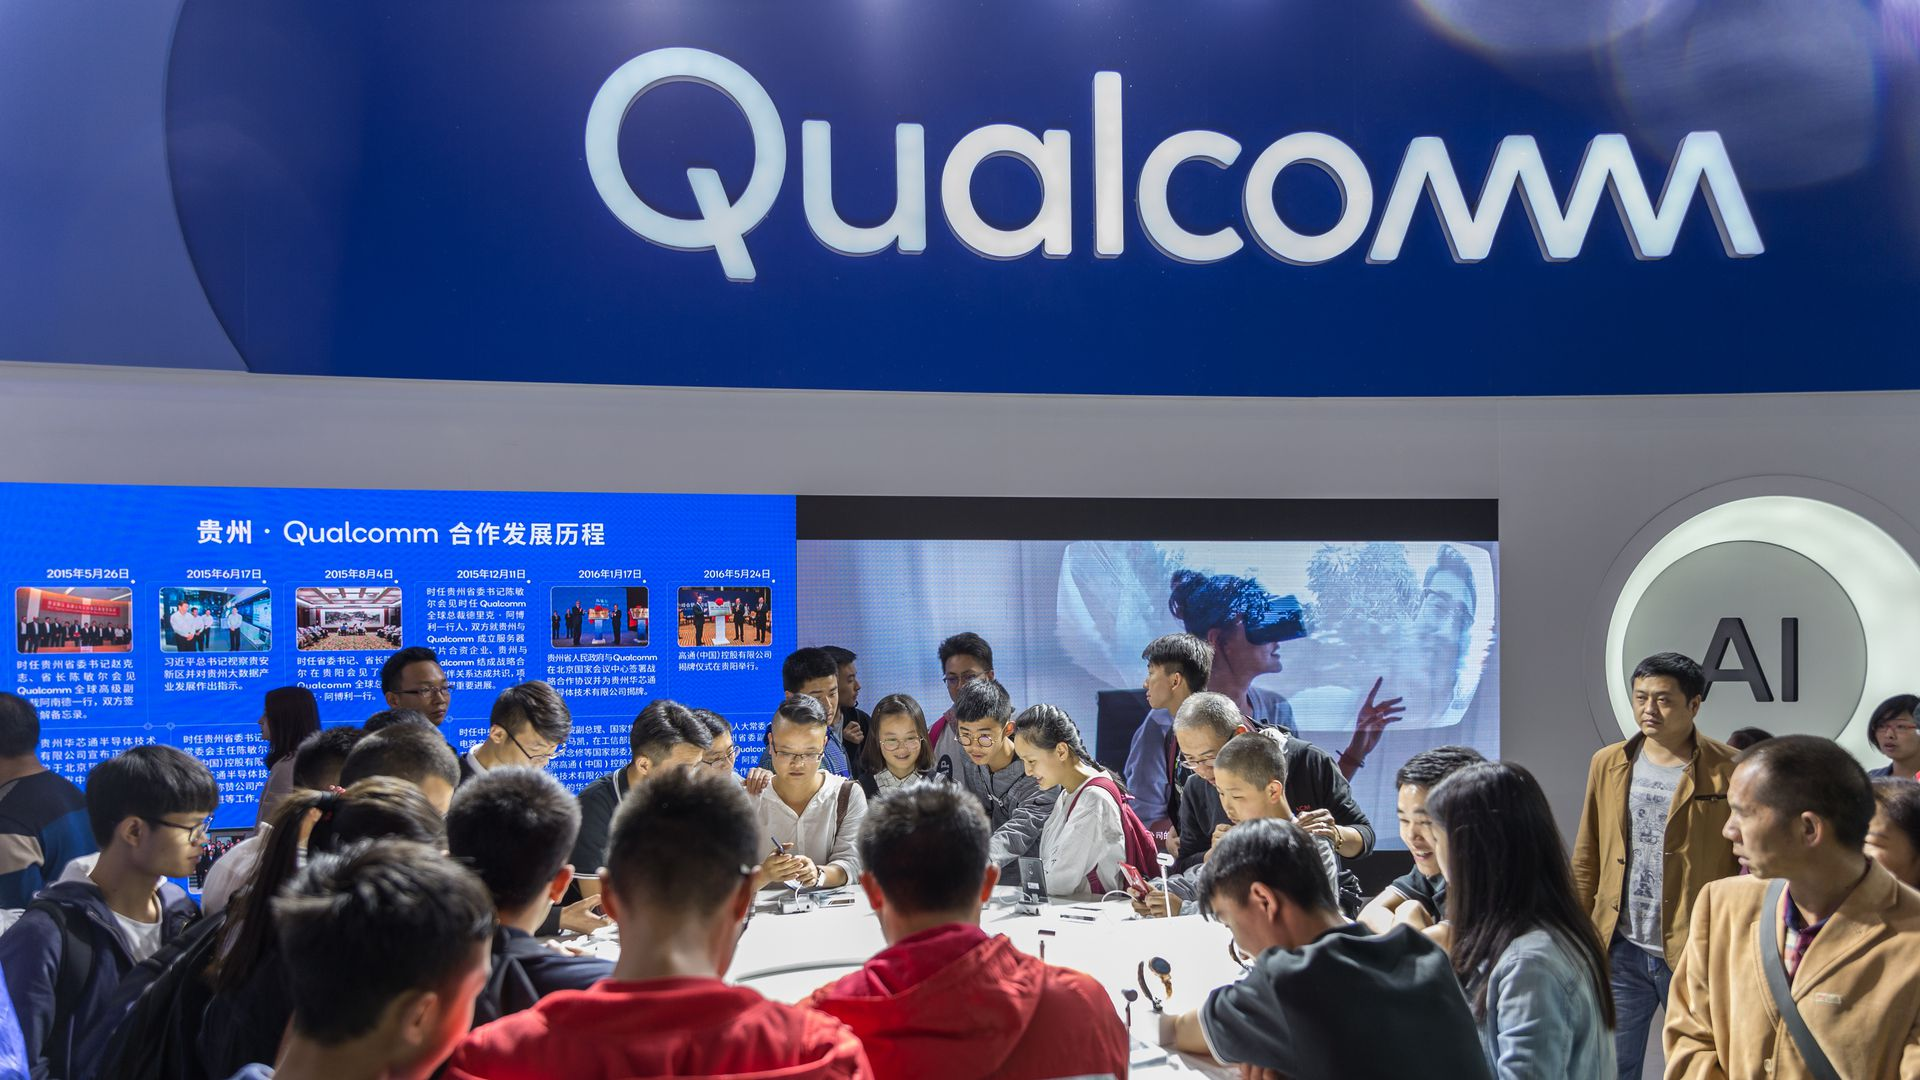 A Qualcomm booth at a Chinese trade show